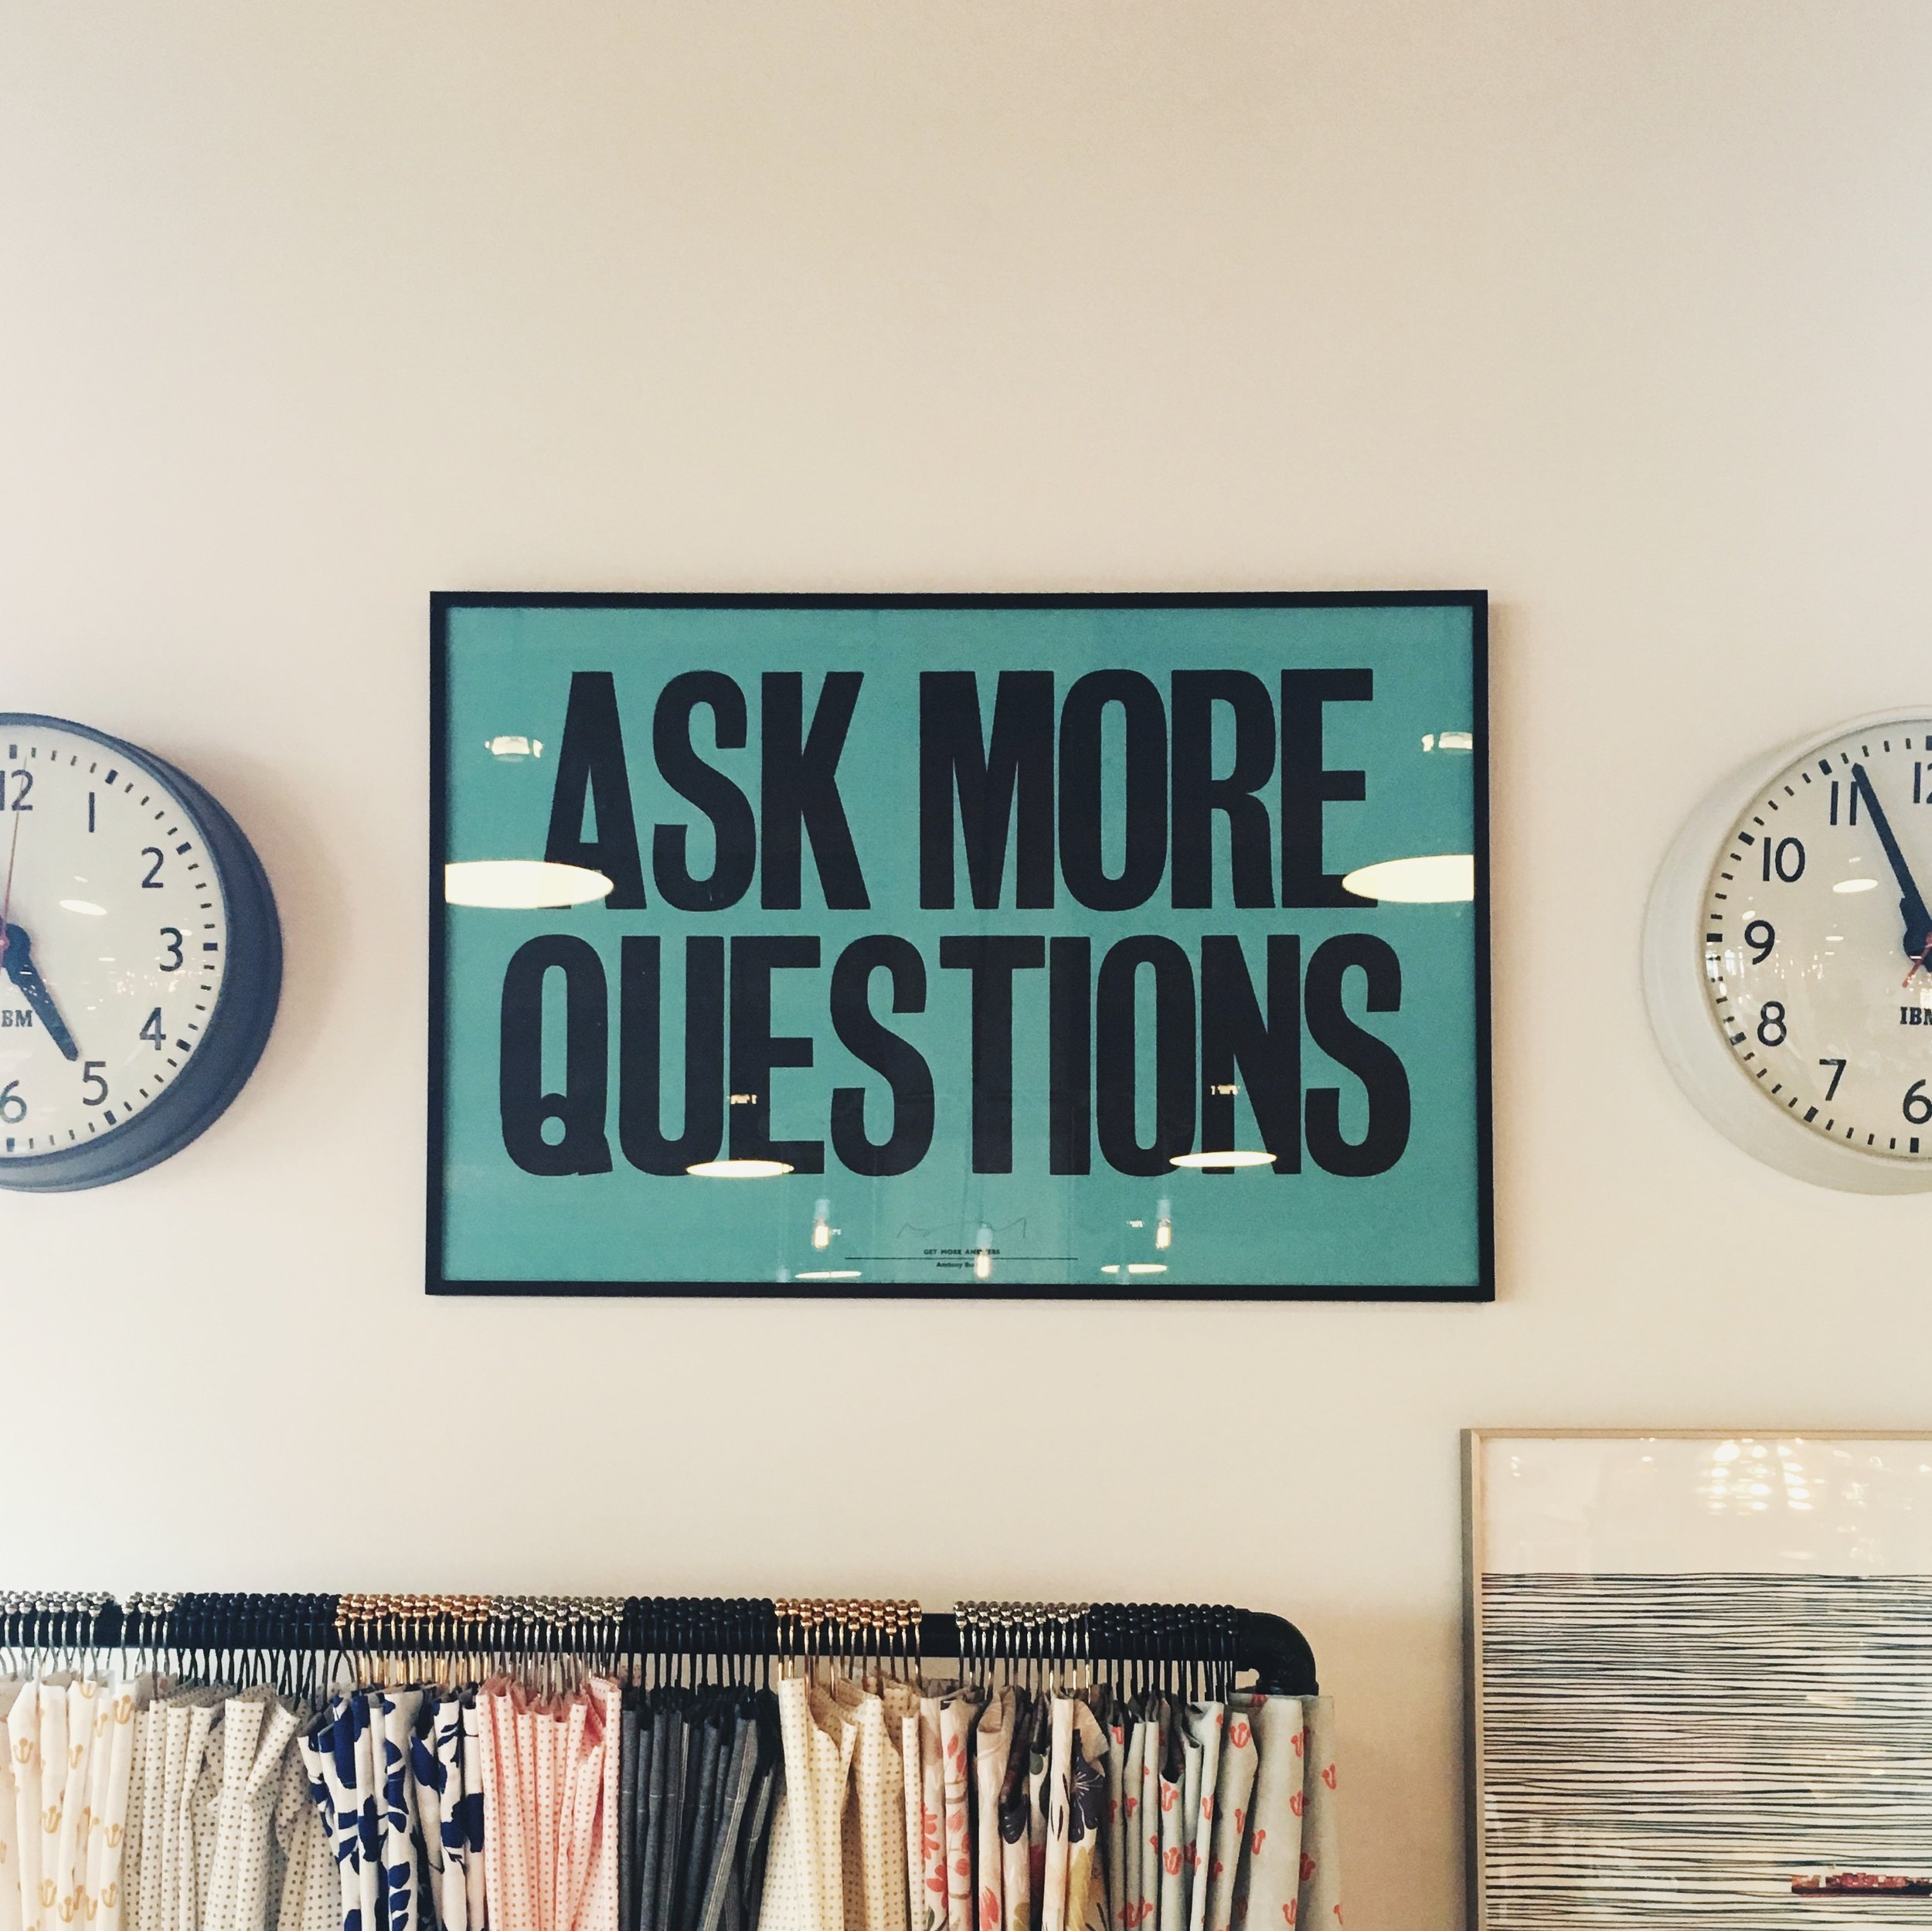 pexels-photo-92028.jpeg